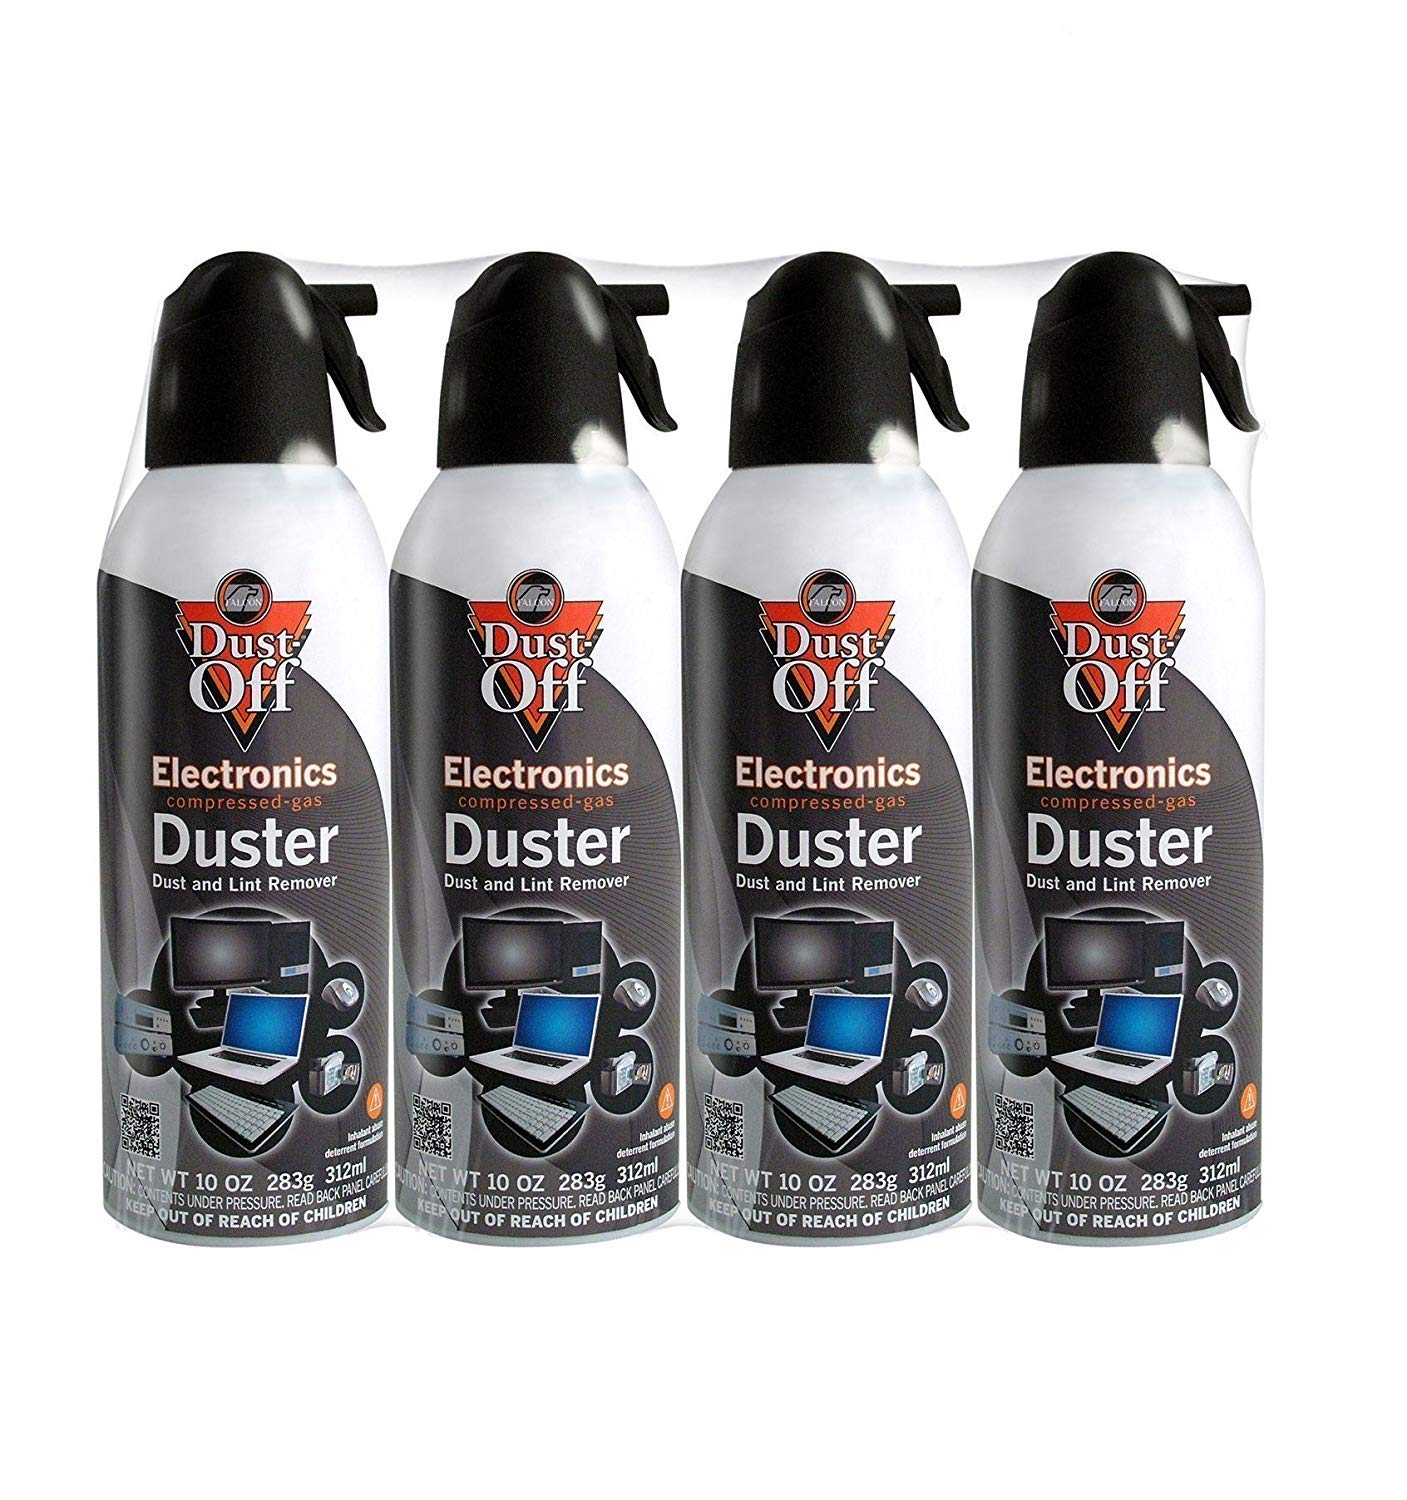 Falcon Compressed Gas (152a) Disposable Cleaning Duster 4 Count, 10 oz. Can (DPSXL4T) (3 Pack(4 Count